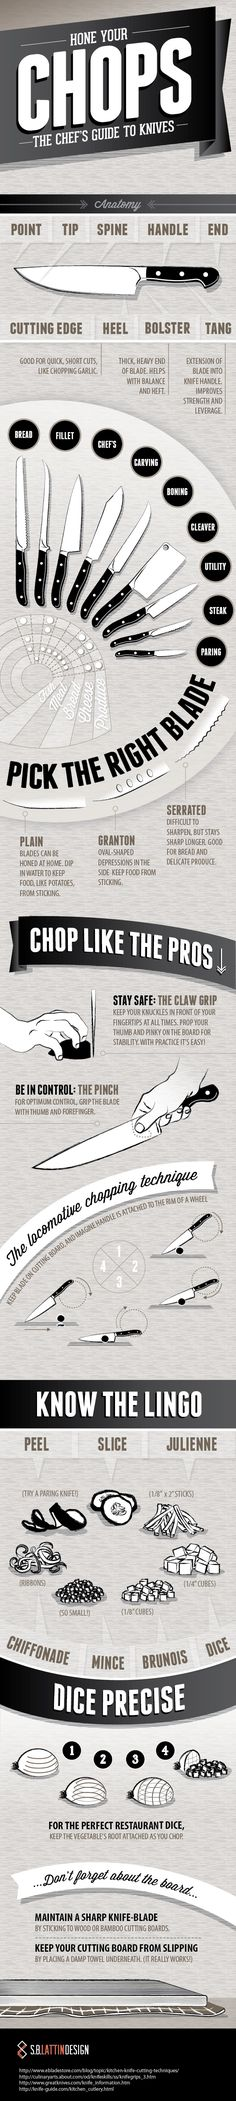 A chef's guide to knives infographic